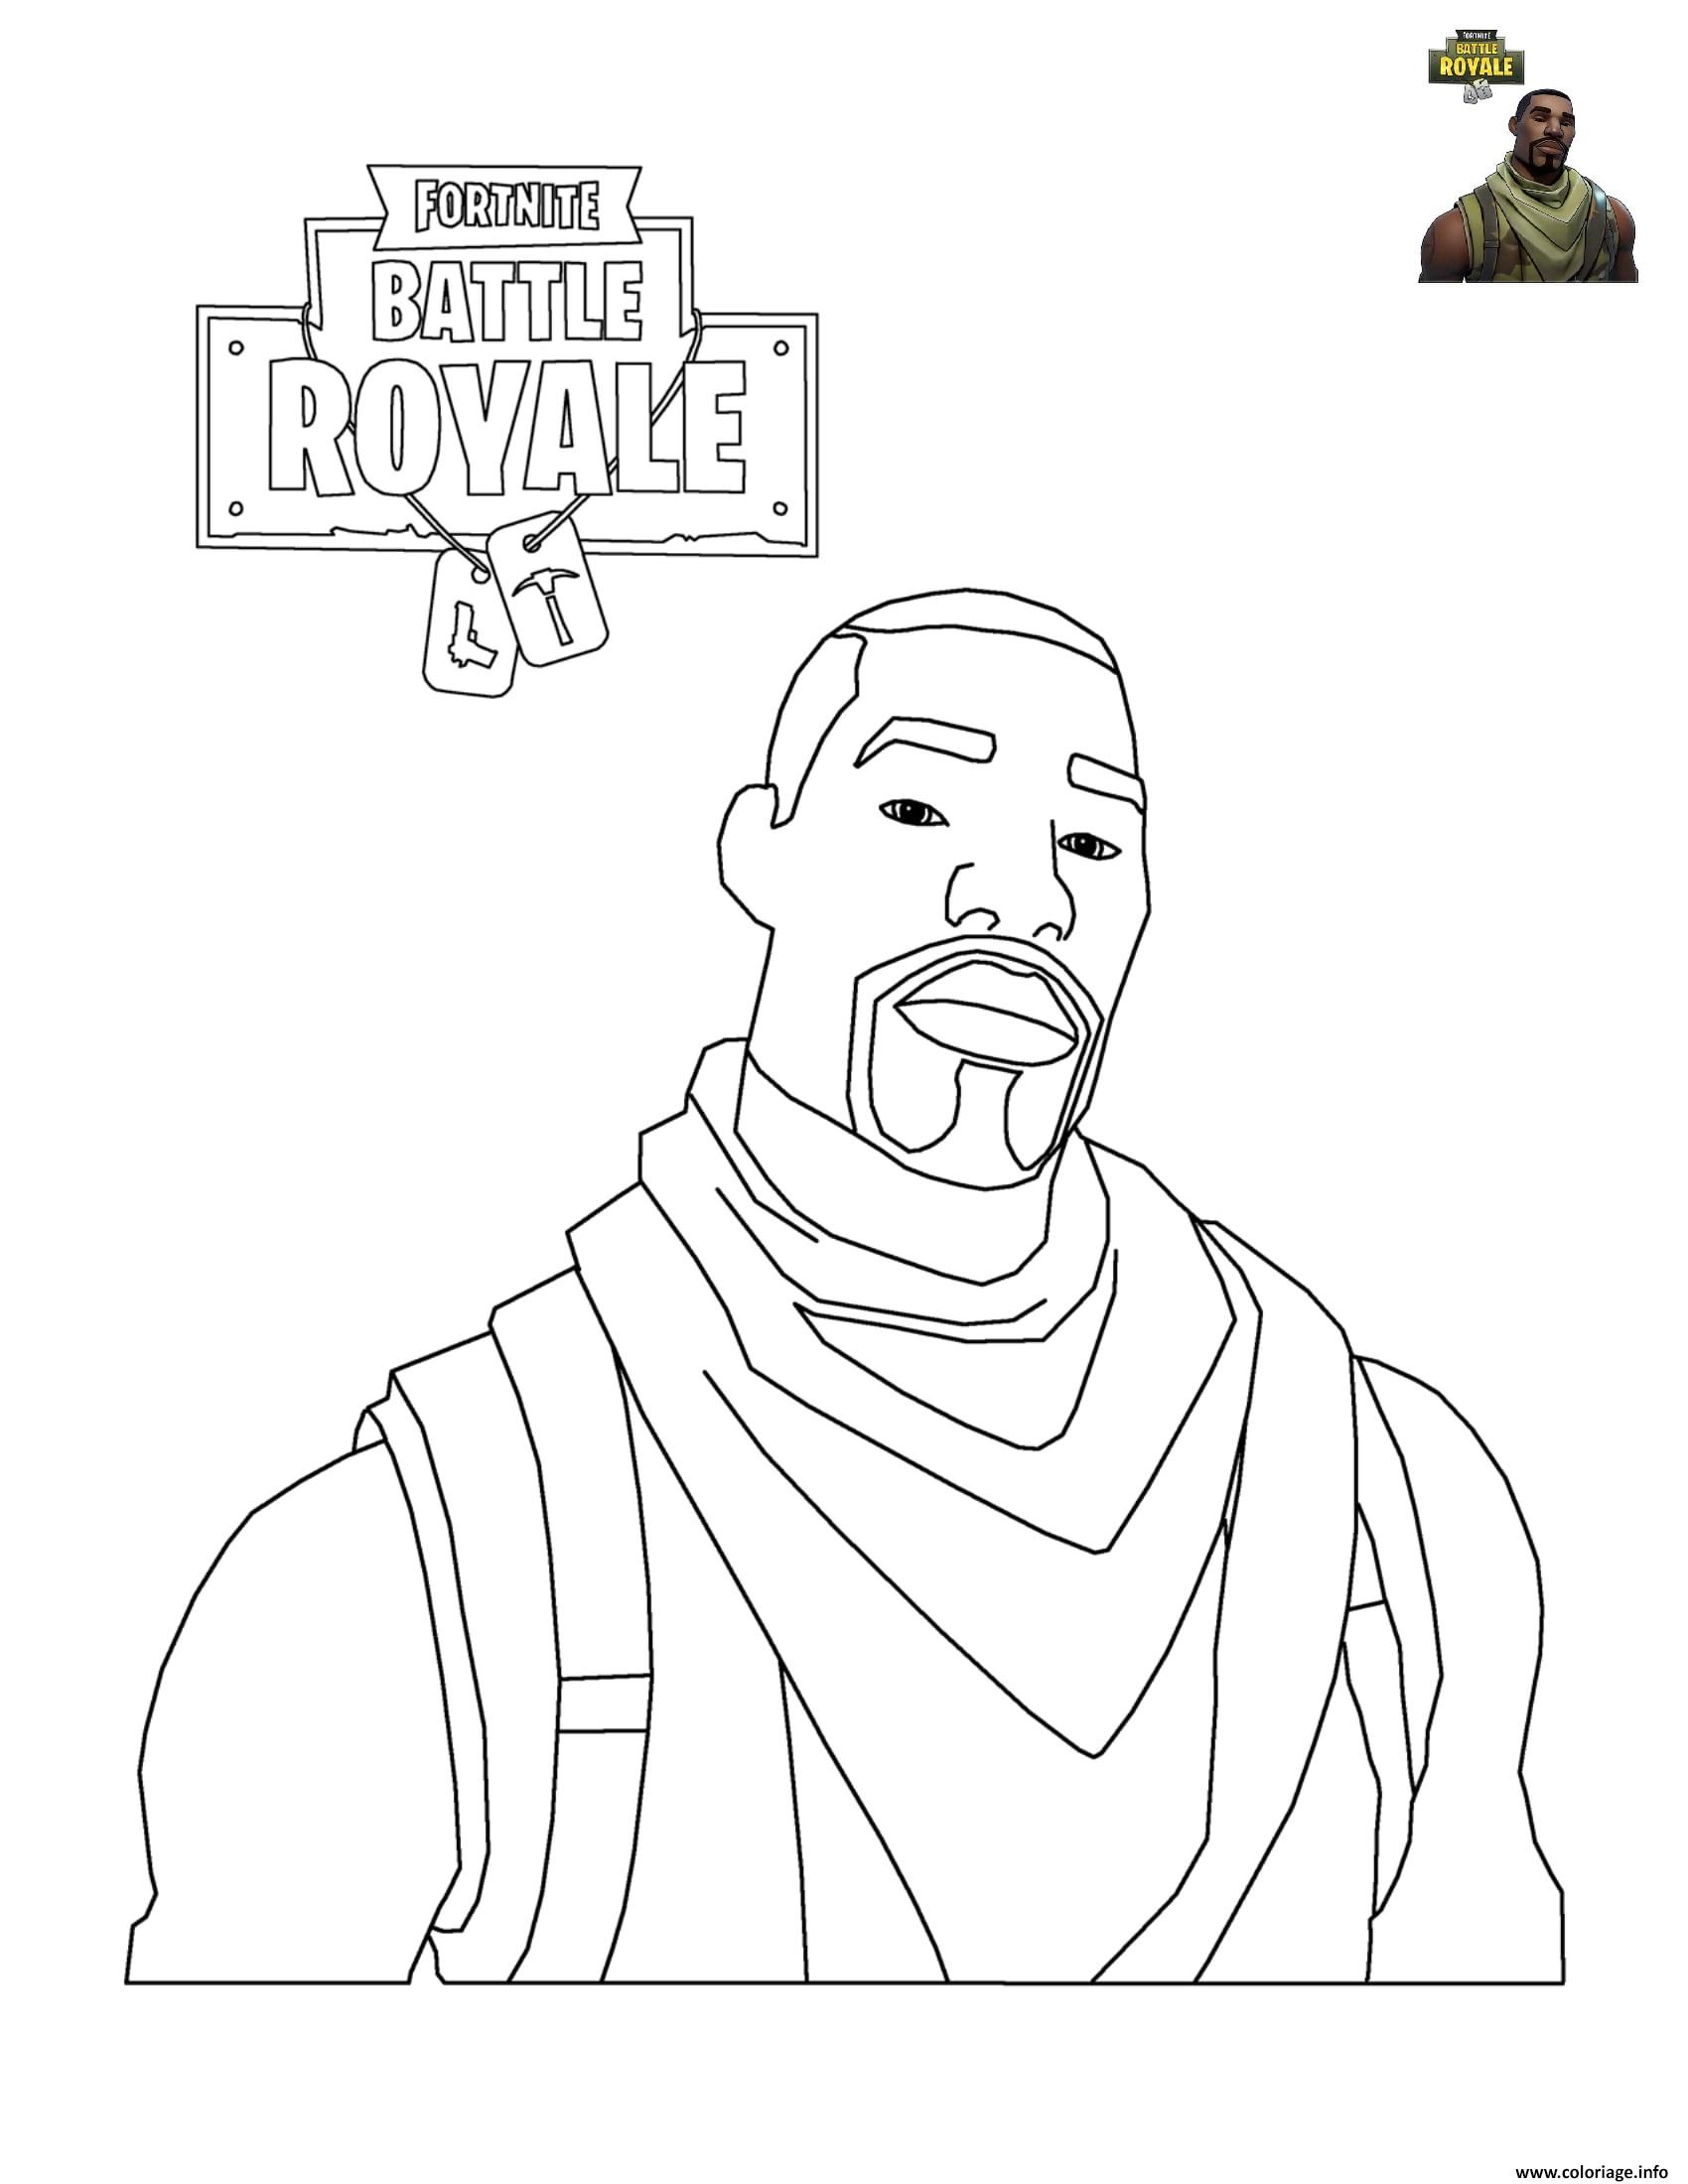 Coloriage fortnite battle royale personnage 2 - Personnage a dessiner ...